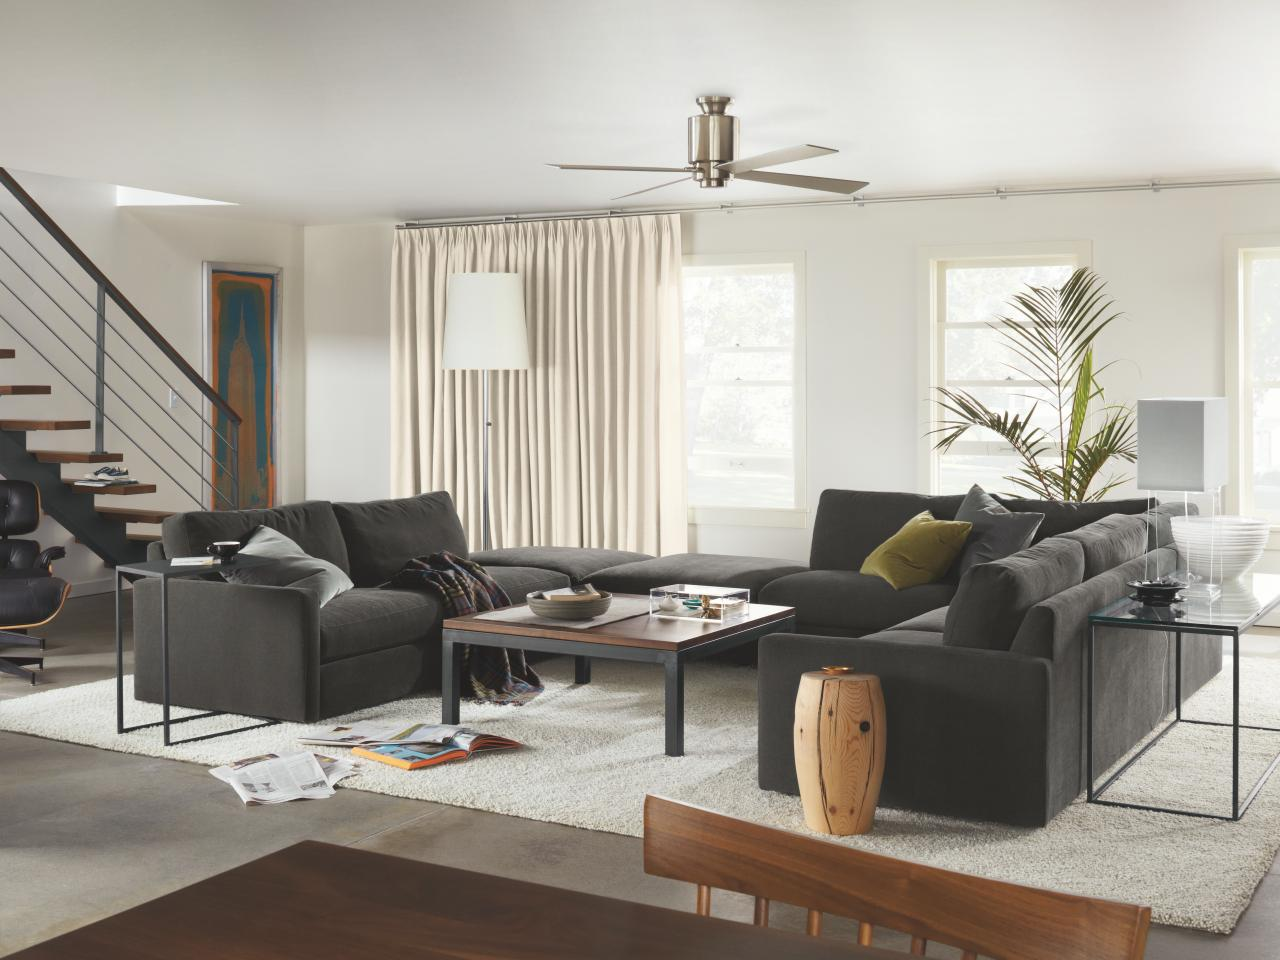 Design and Layout a Small Living Room